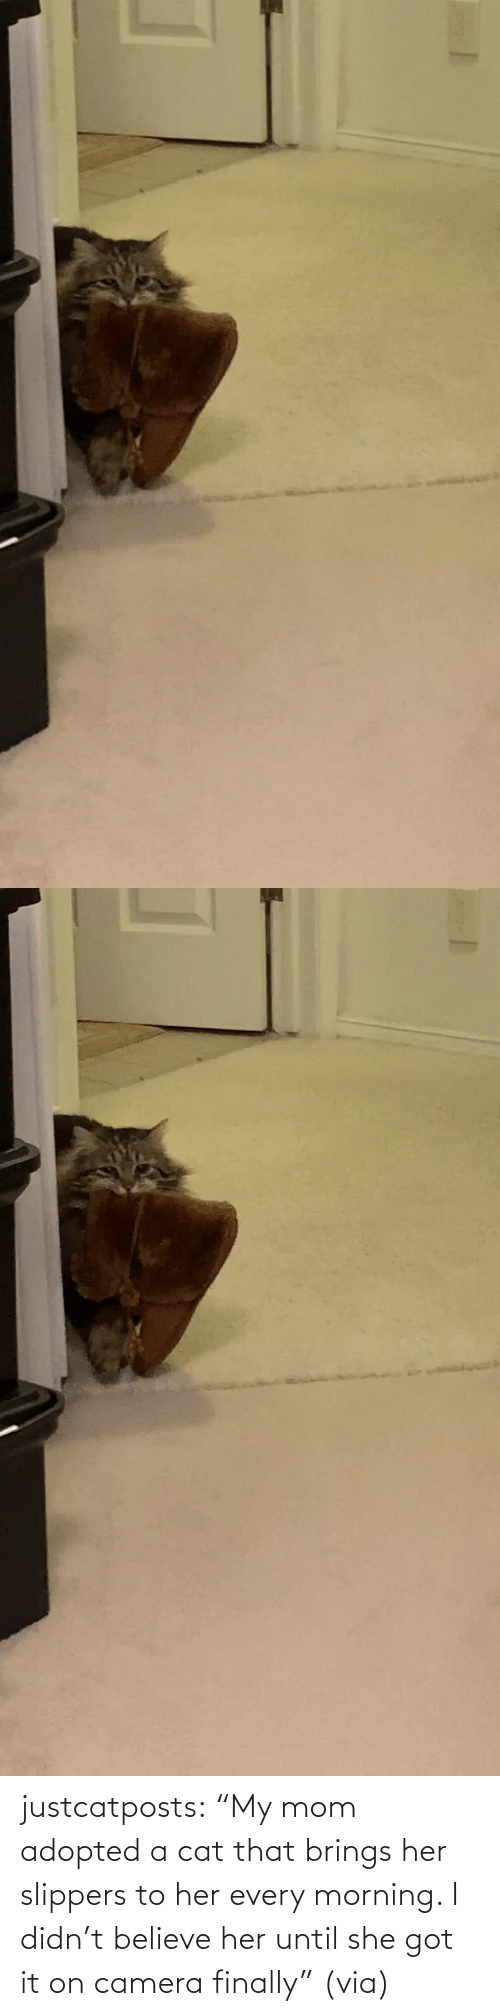 "believe: justcatposts:  ""My mom adopted a cat that brings her slippers to her every morning. I didn't believe her until she got it on camera finally"" (via)"